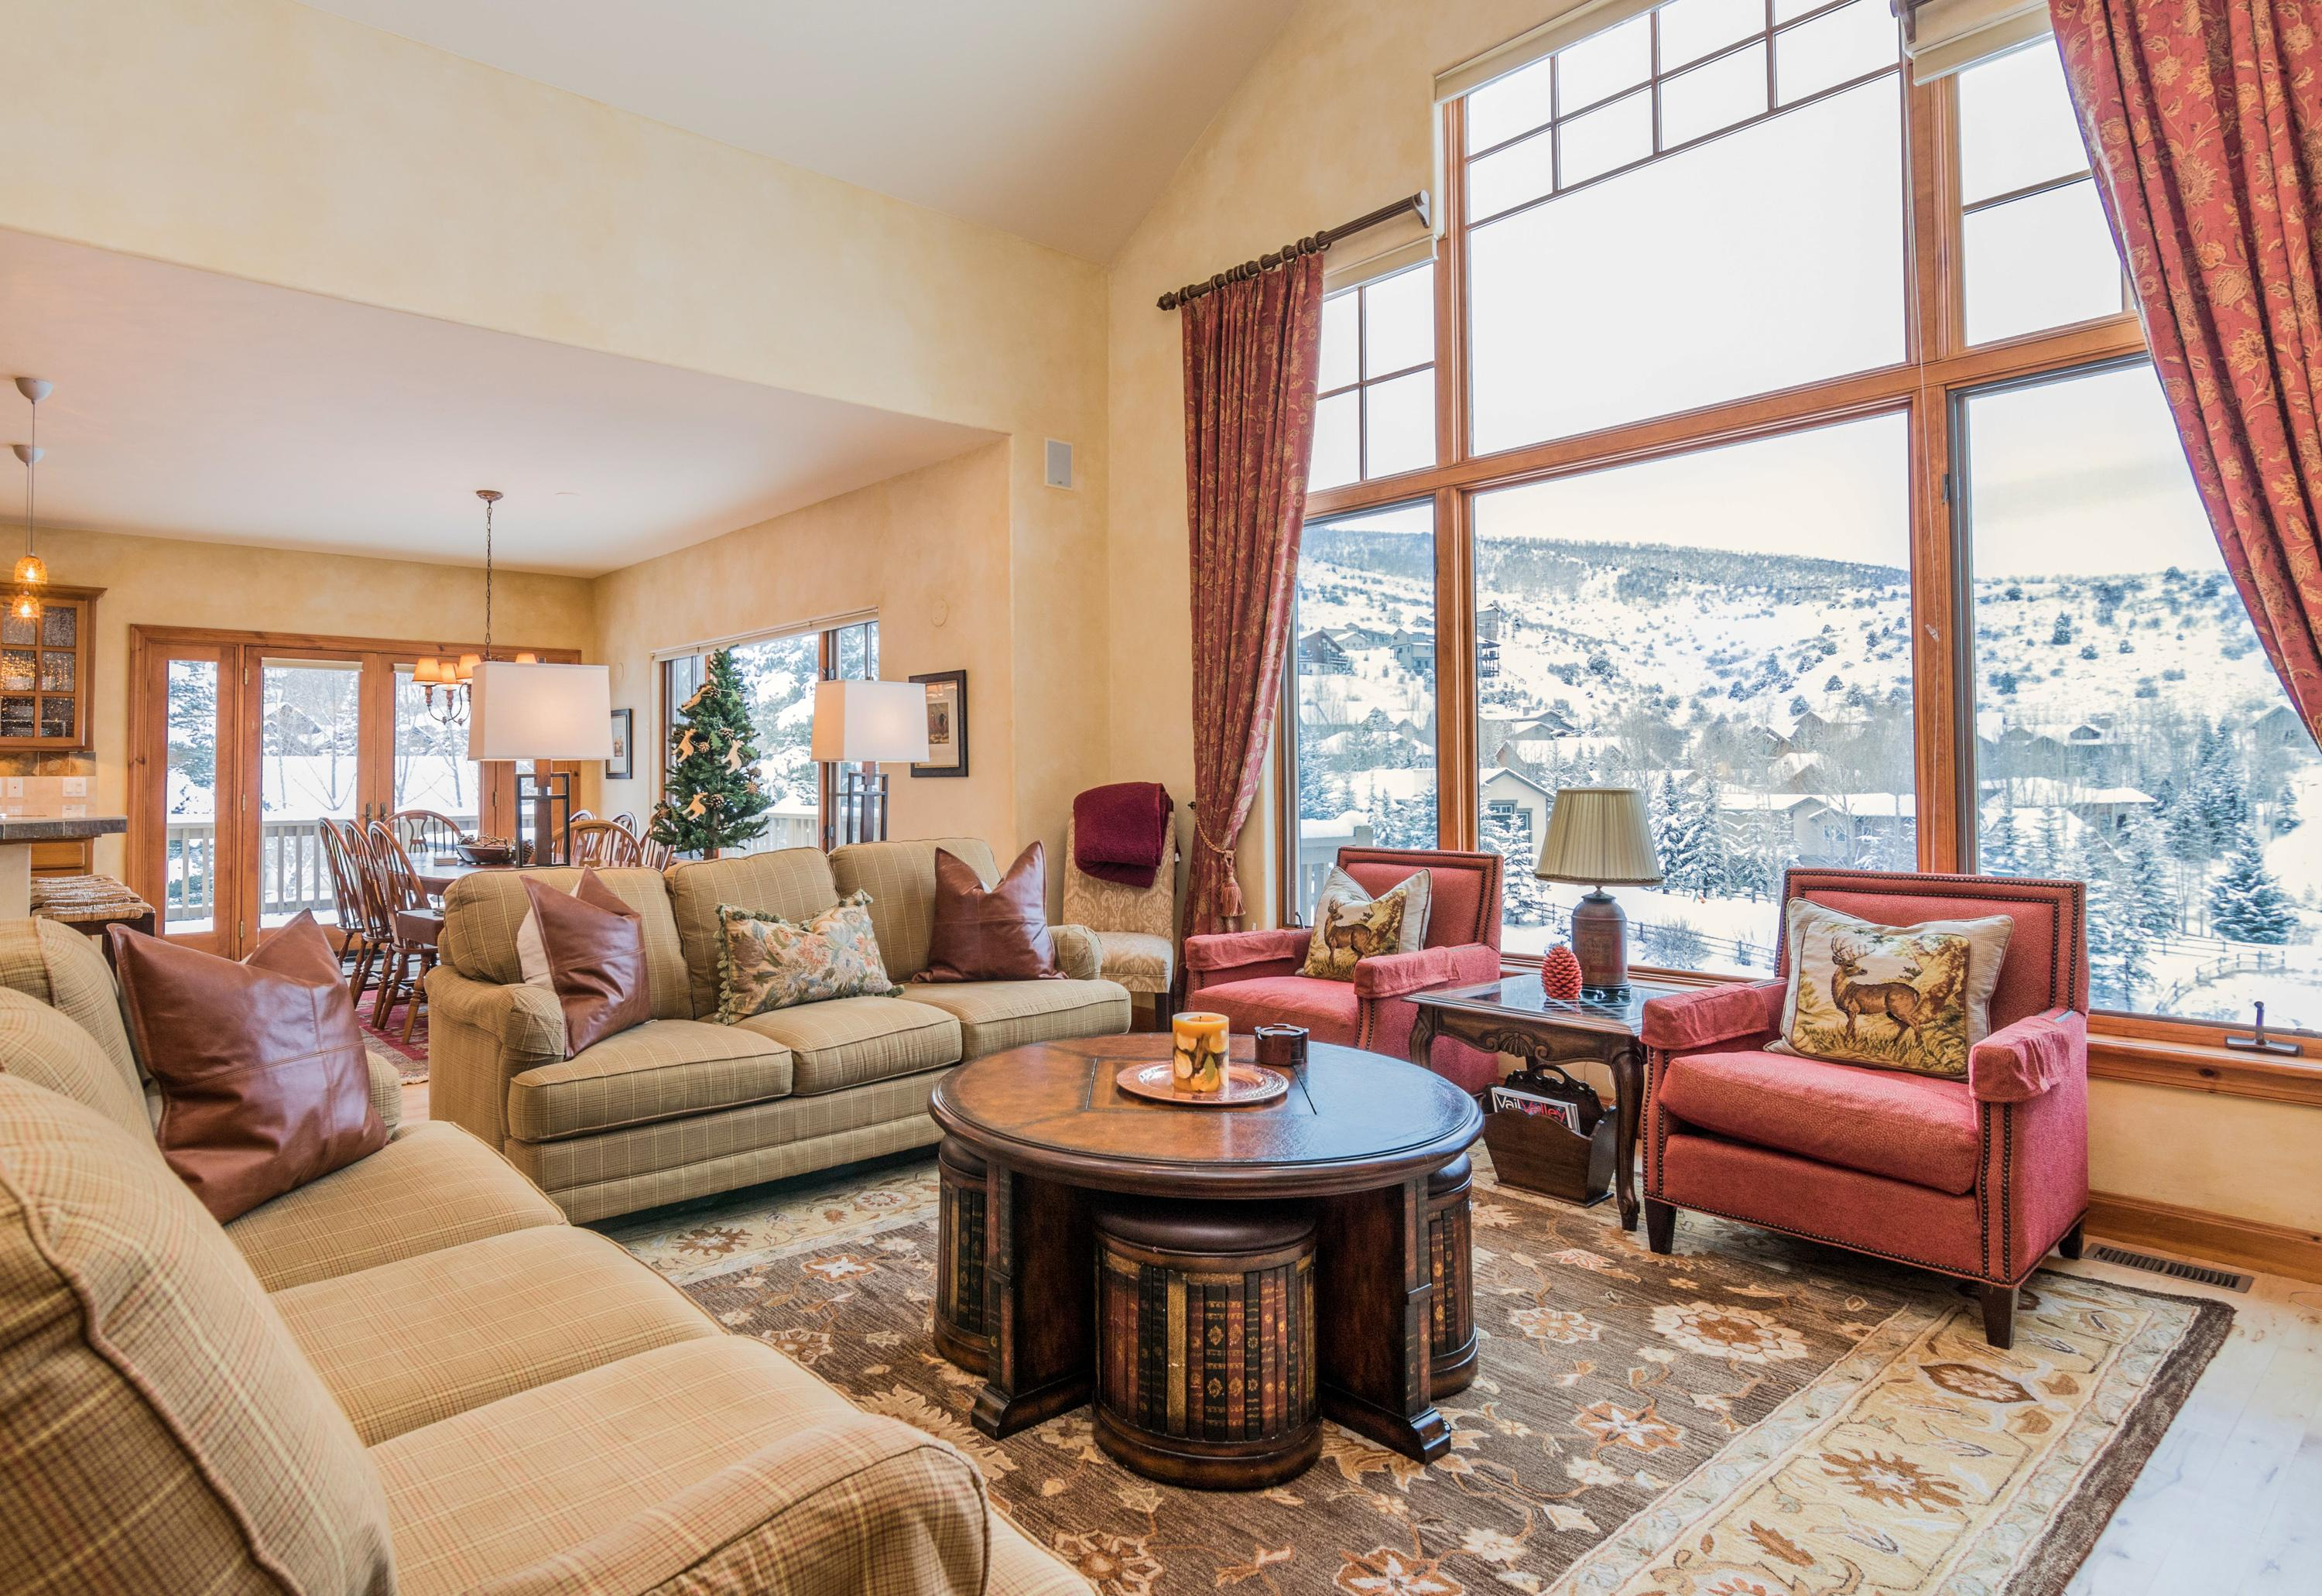 Stretch out in the open-concept living space and take in views of the rolling hillsides.